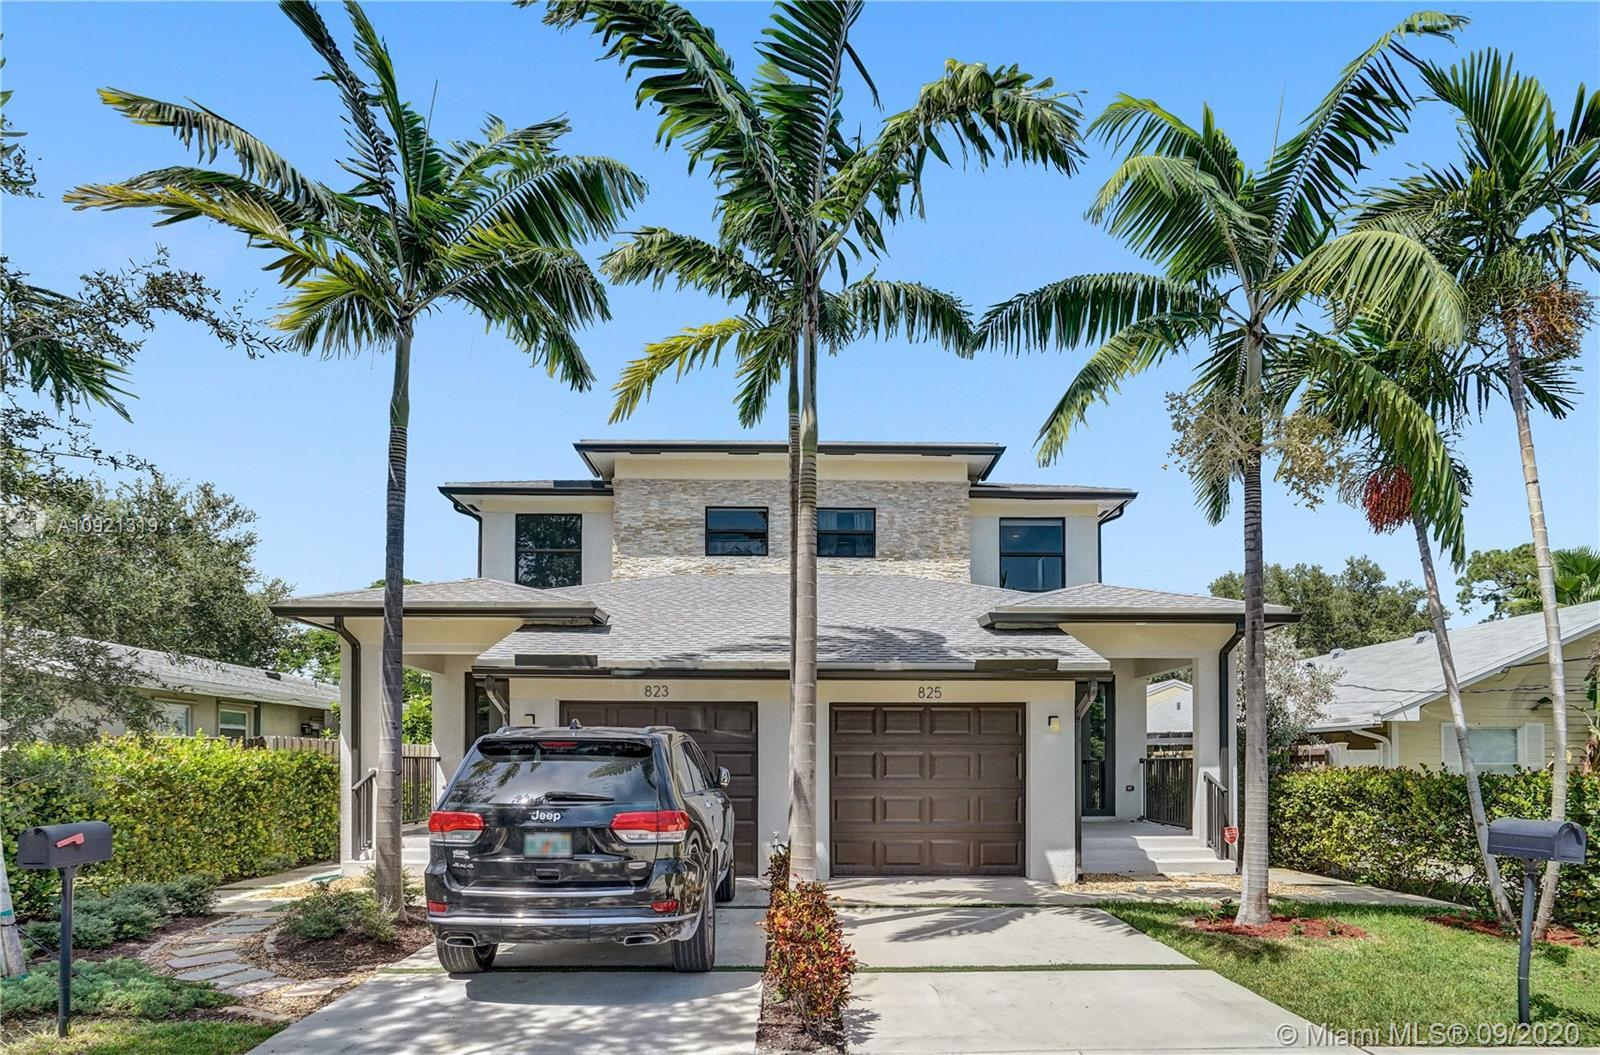 Beautiful townhome built in 2017 located in the heart of Fort Lauderdale. Just East of US-1 and Nort